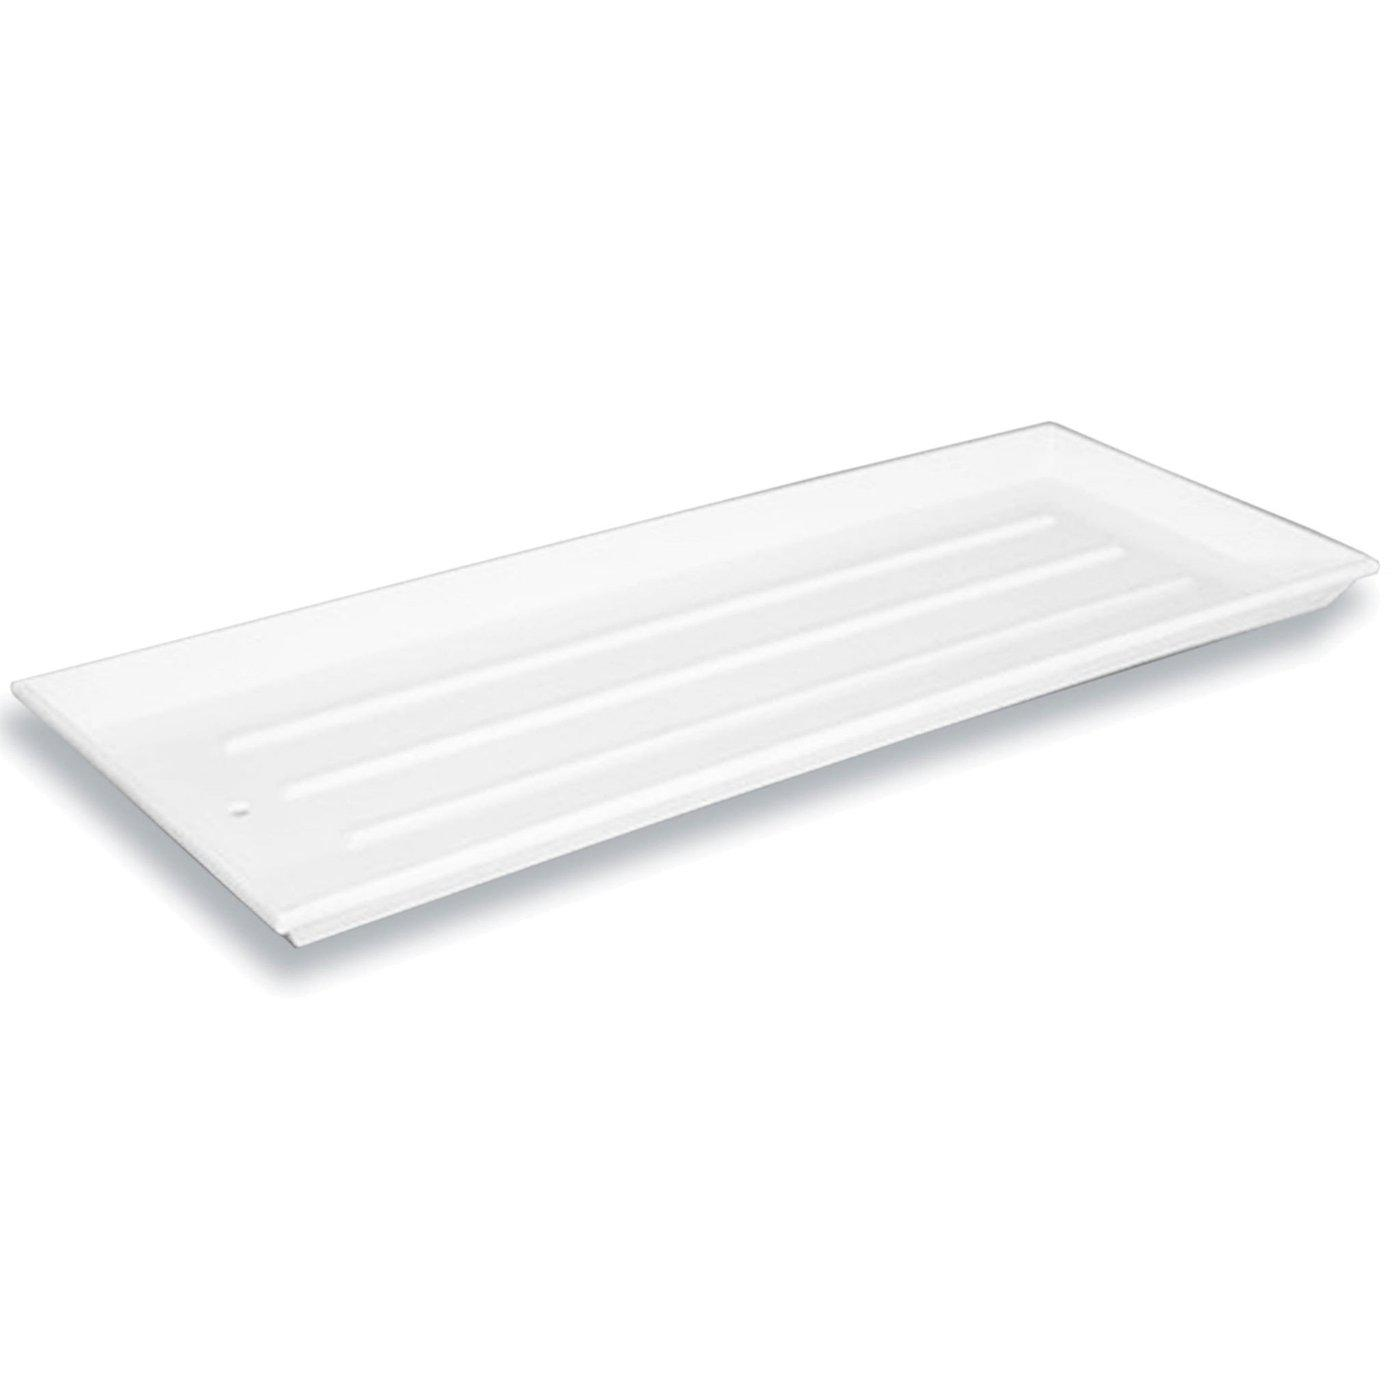 Fiberglass Tray-Cadaver Trays-Mortech Manufacturing Company Inc. Quality Stainless Steel Autopsy, Morgue, Funeral Home, Necropsy, Veterinary / Anatomy, Dissection Equipment and Accessories